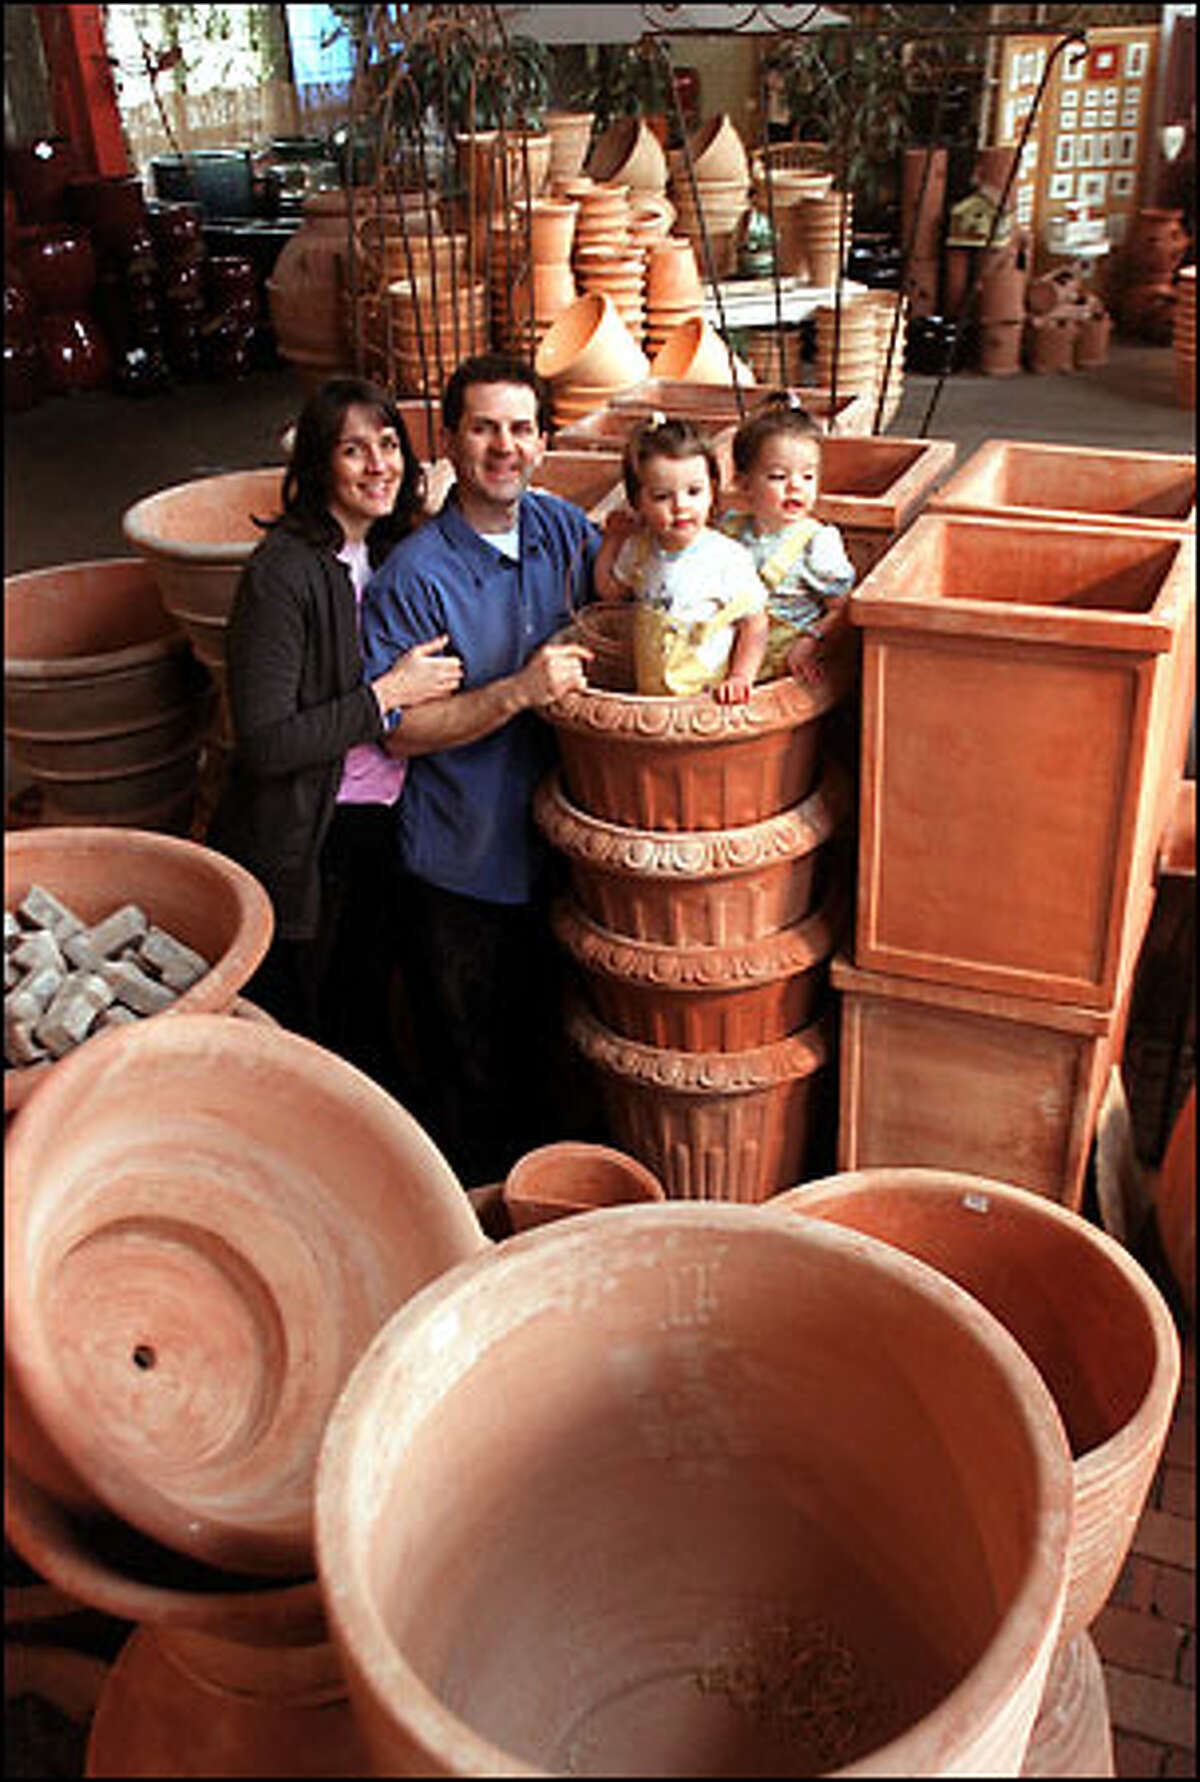 Alison Bockus and her husband, Dan, shown with twin 2-year-old daughters Maisy and Madison in their Herban Pottery store at 3220 First Ave. S., are